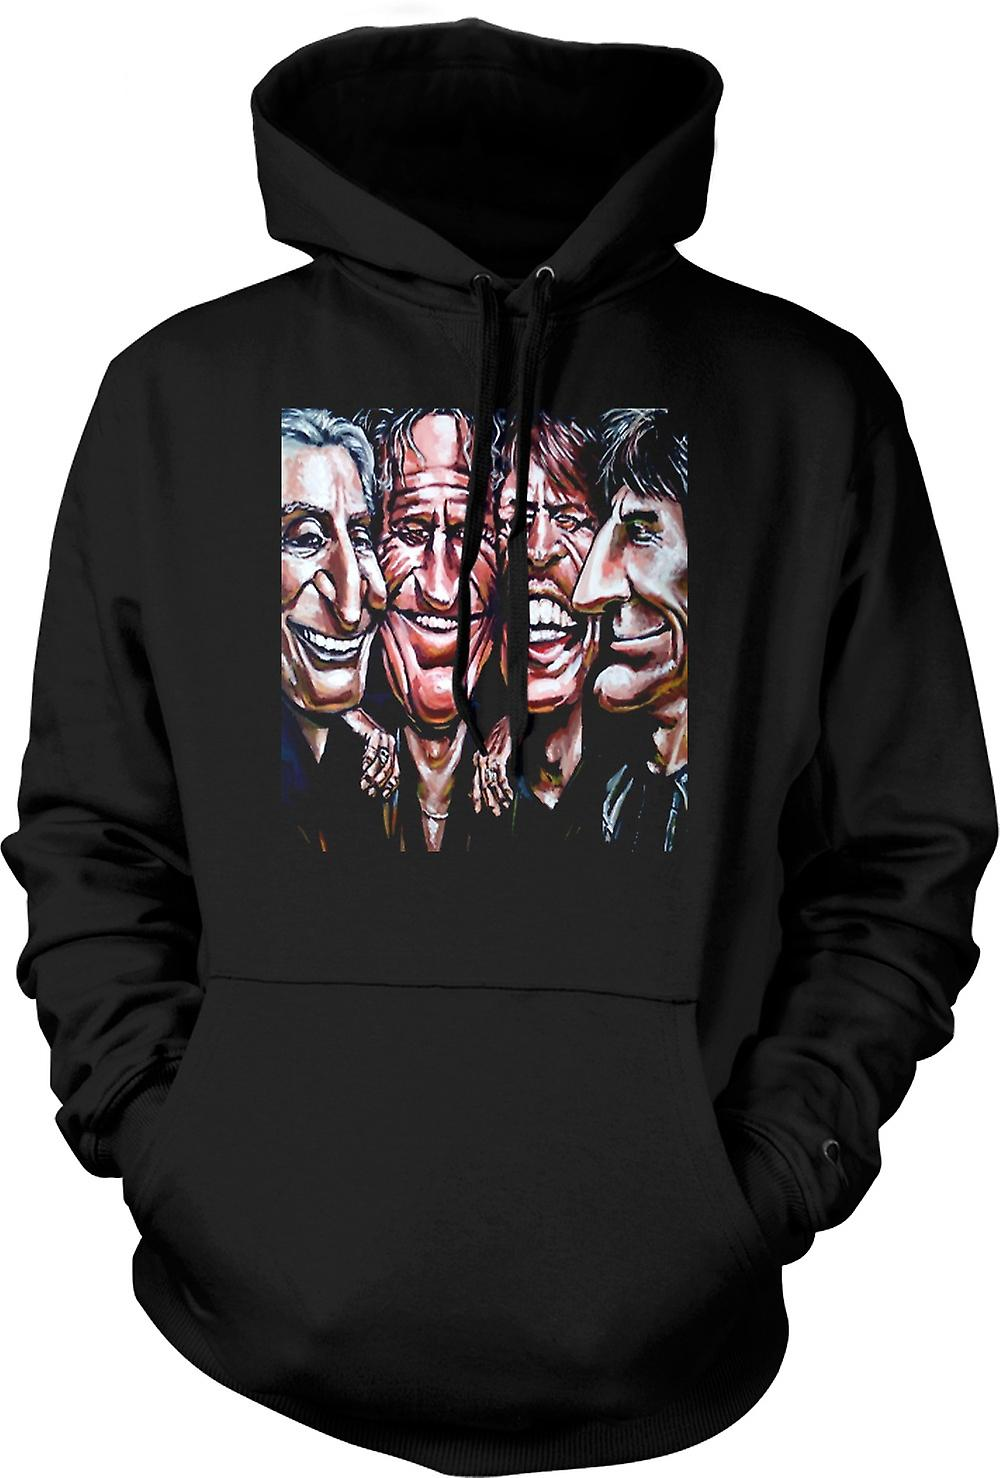 Mens Hoodie - Rolling Stones - Cartoon - Band